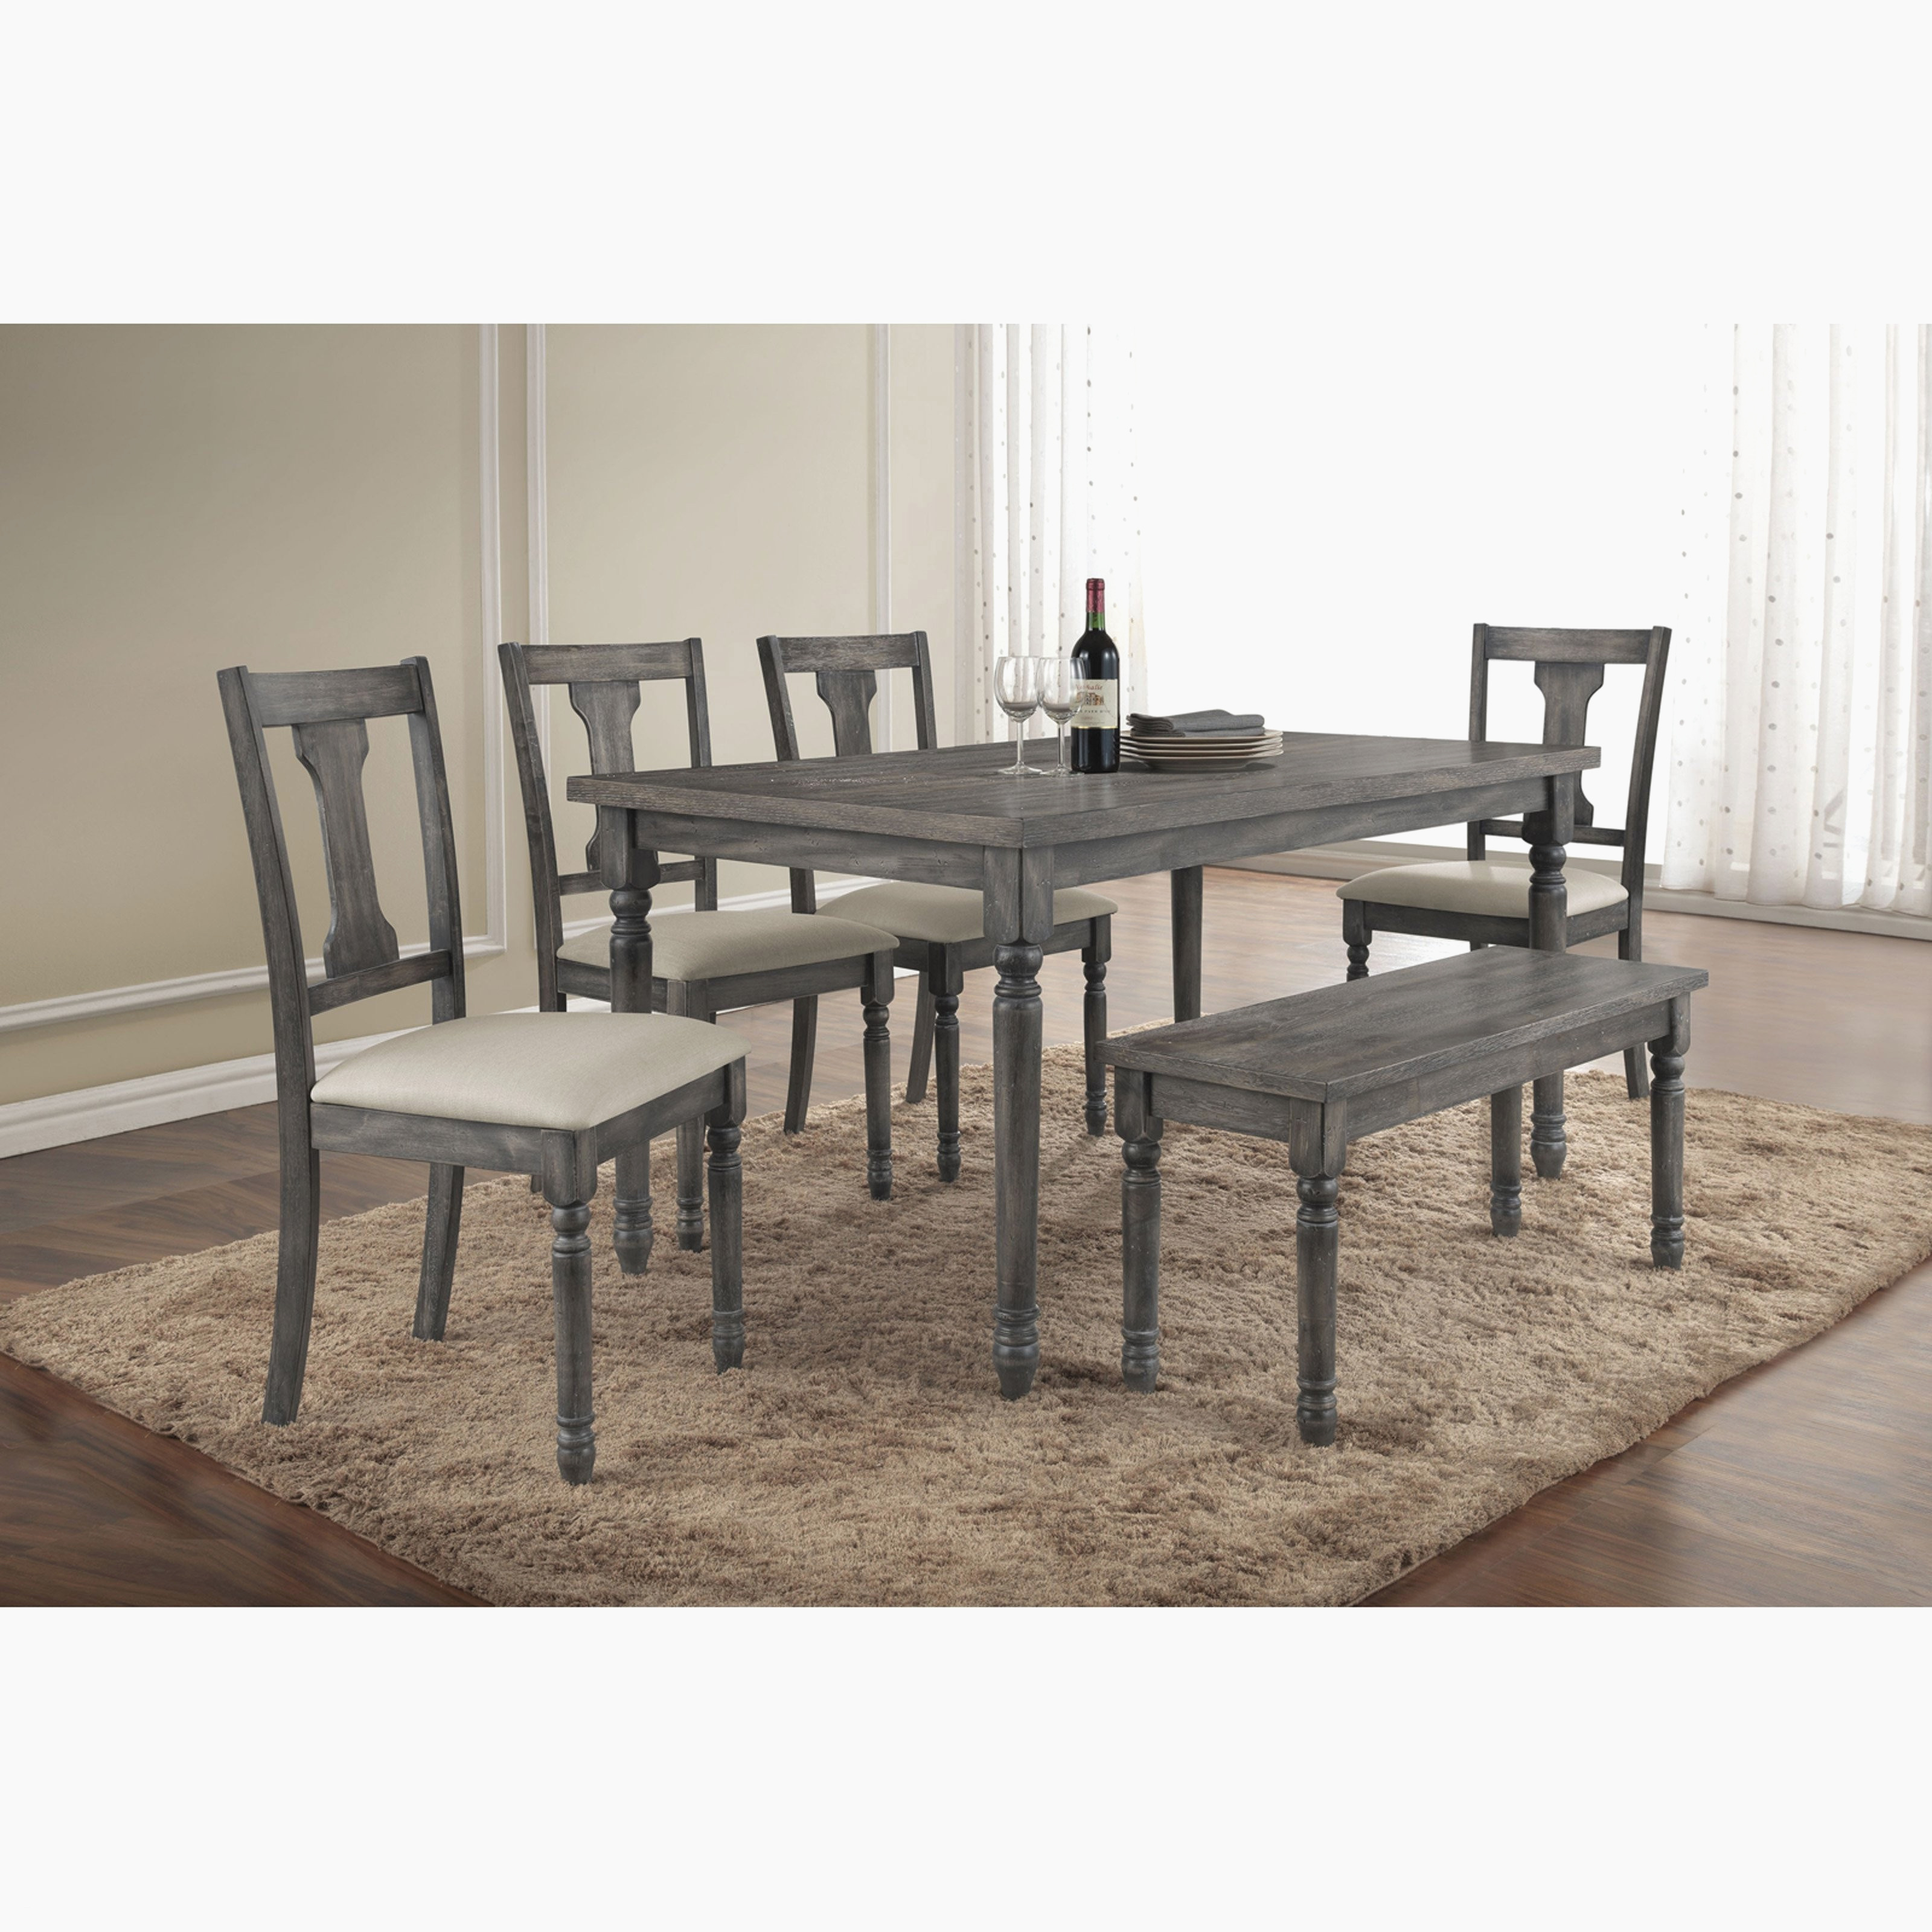 Dining Table Set With Bench Modern White Dining Room Sets Unique Layjao